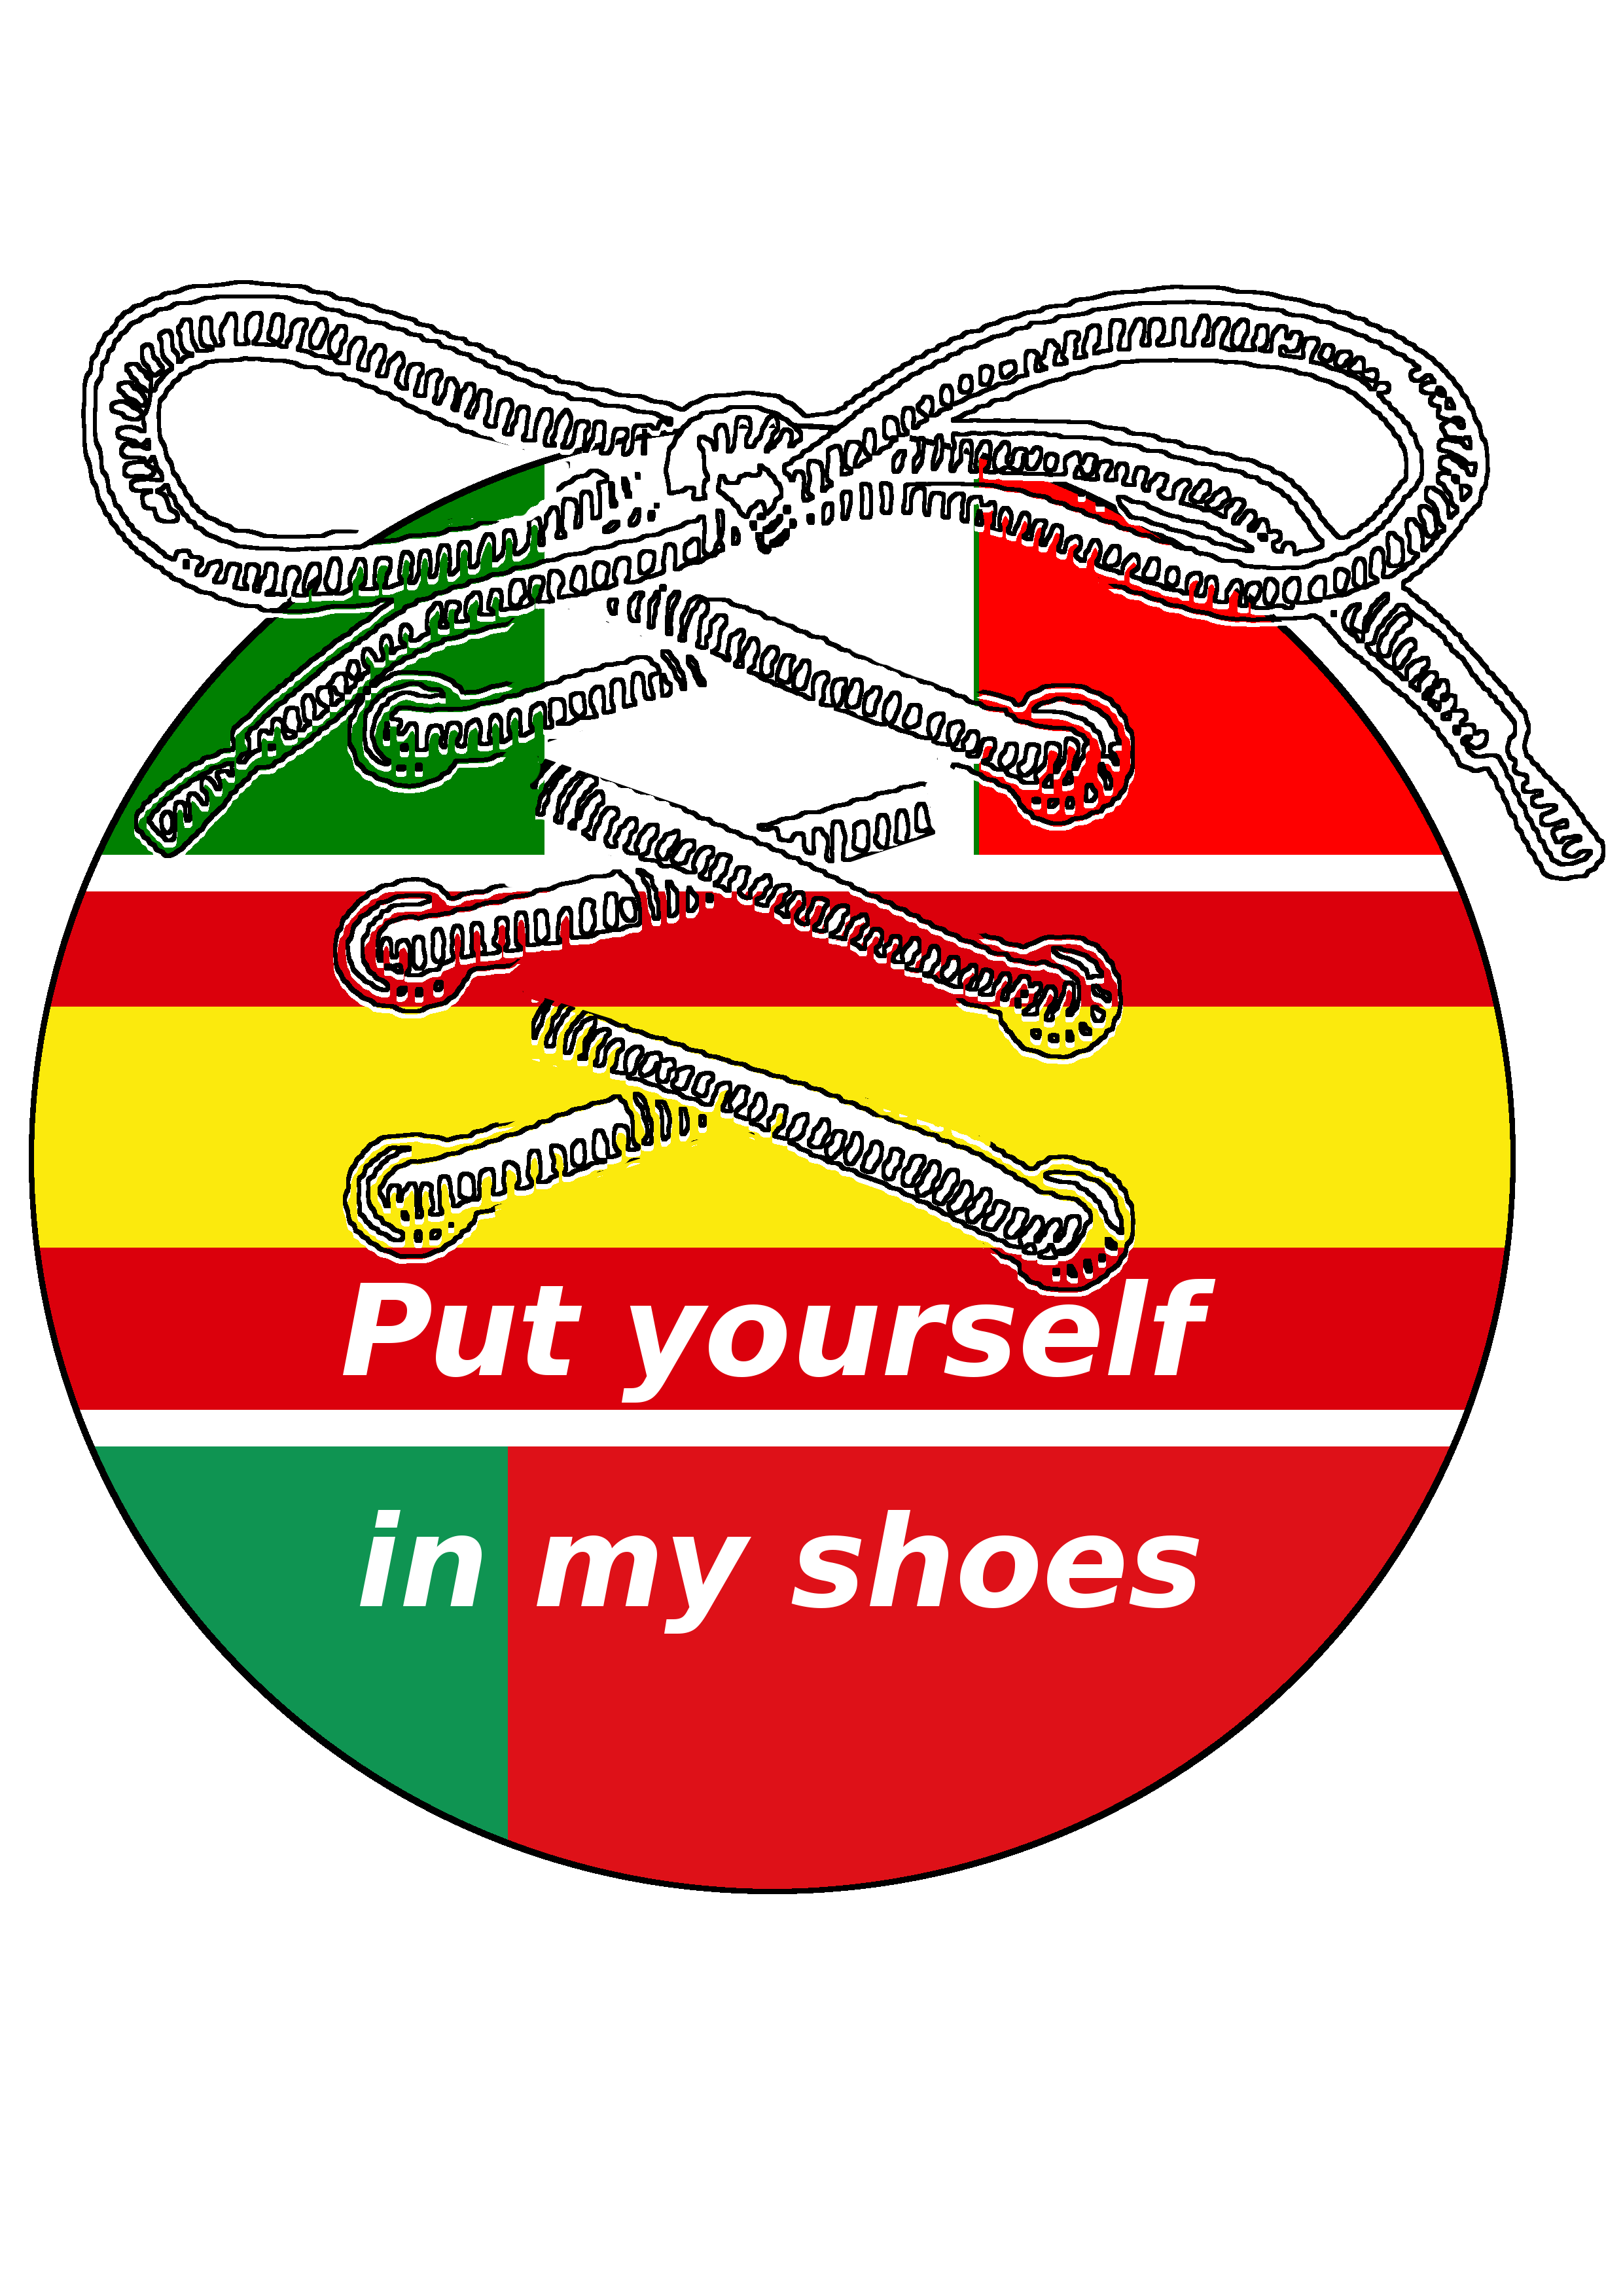 Put yourself in my shoes